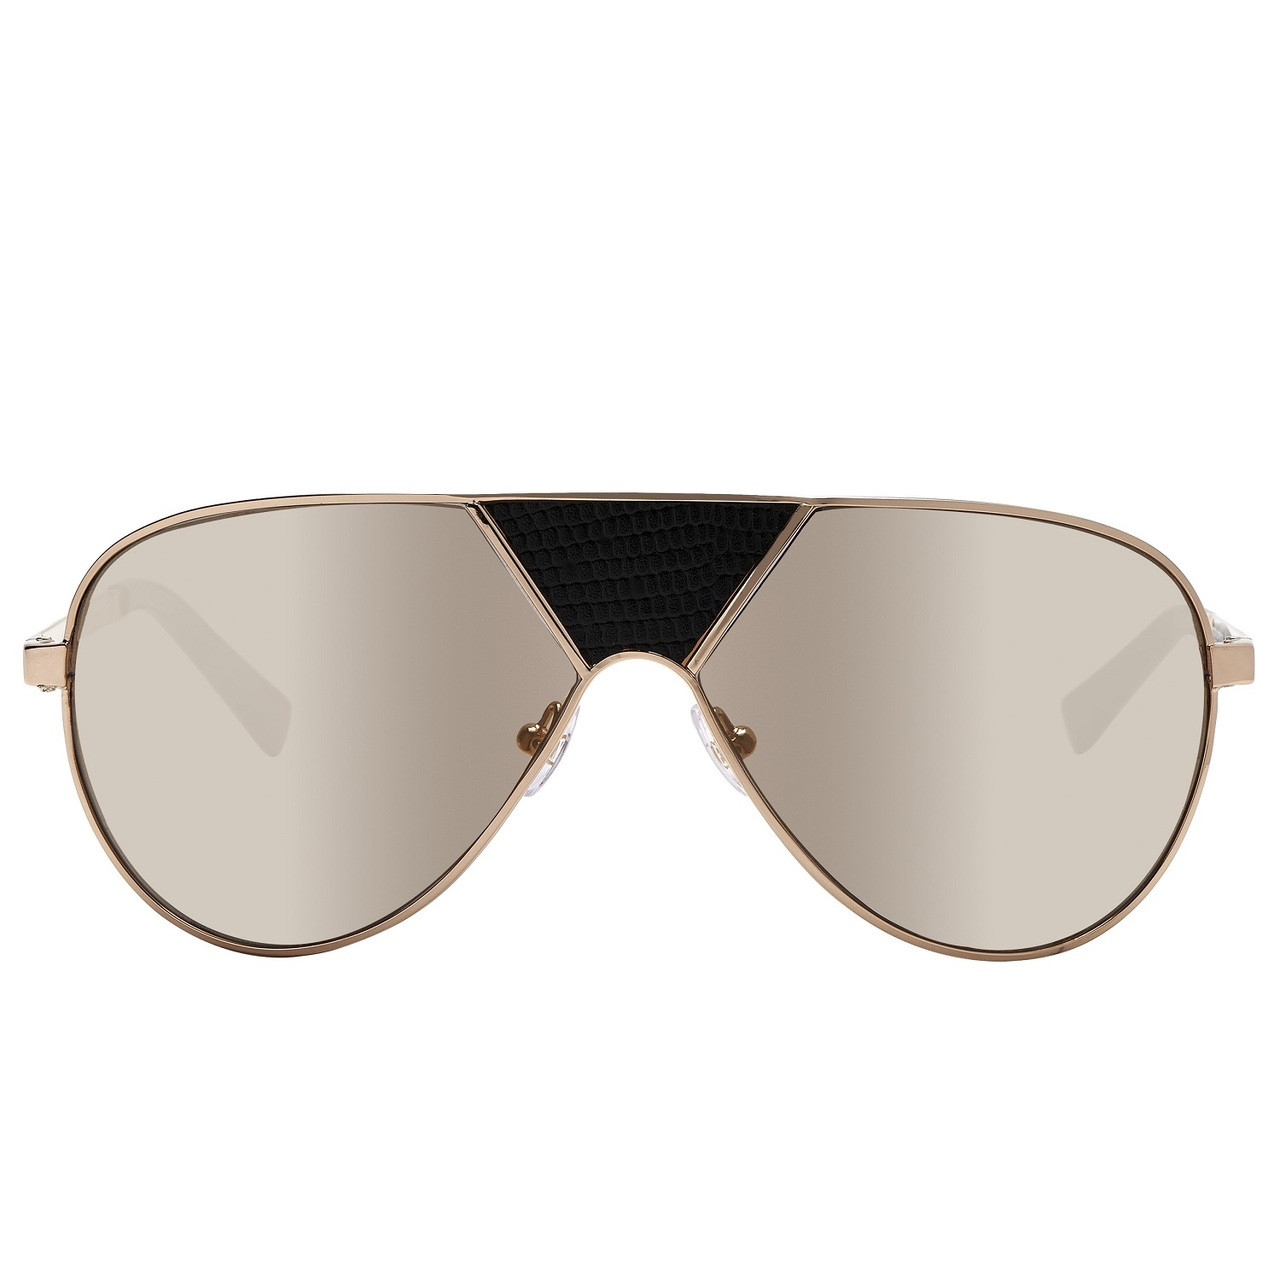 383e0a46a5c483 Balmain Limited Edition STUDIO Mask Framed Aviator Sunglasses. Price:  $500.00. Image 1